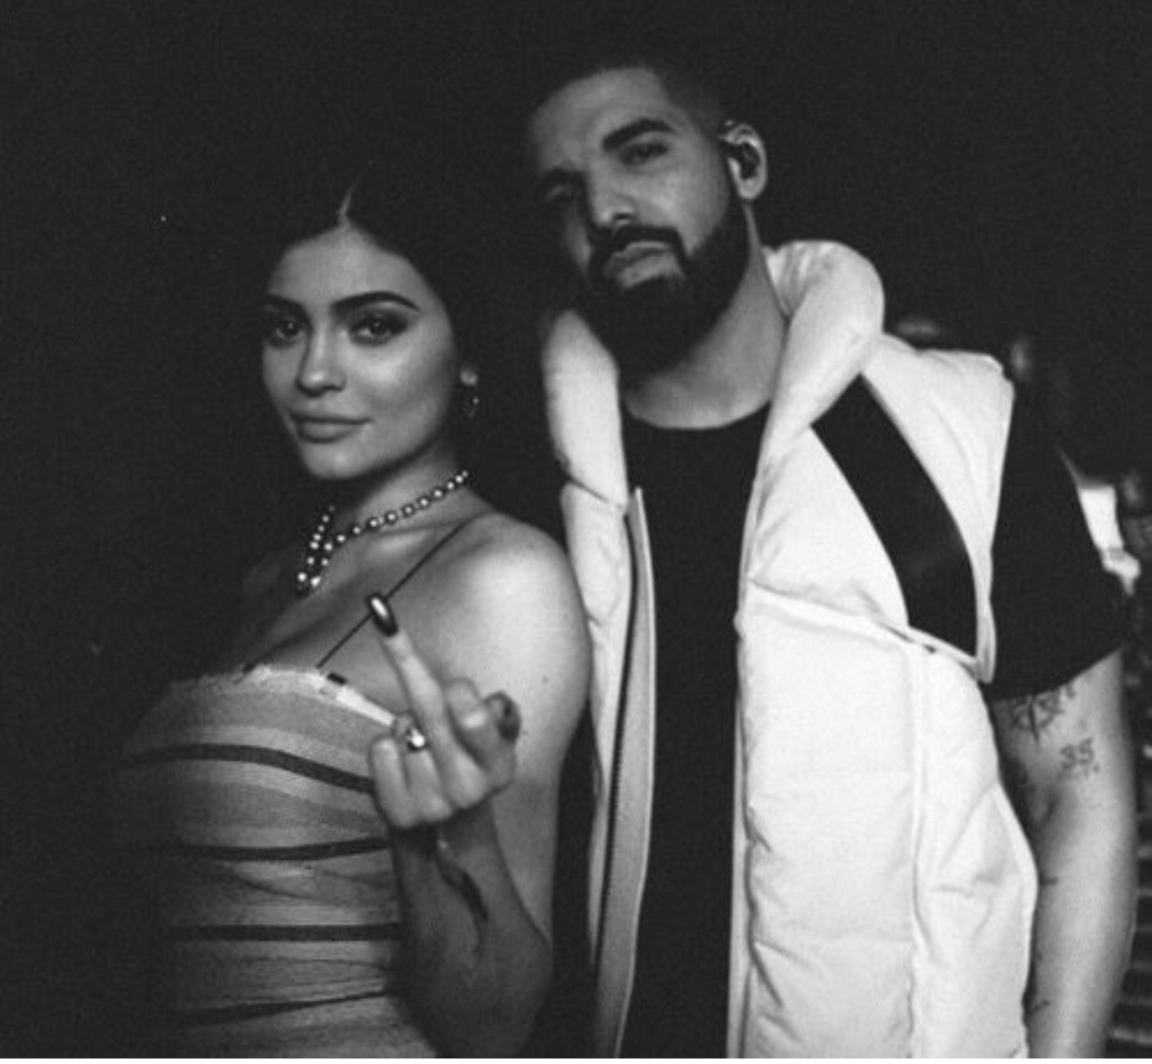 Kylie Jenner and Drake flirt at his birthday